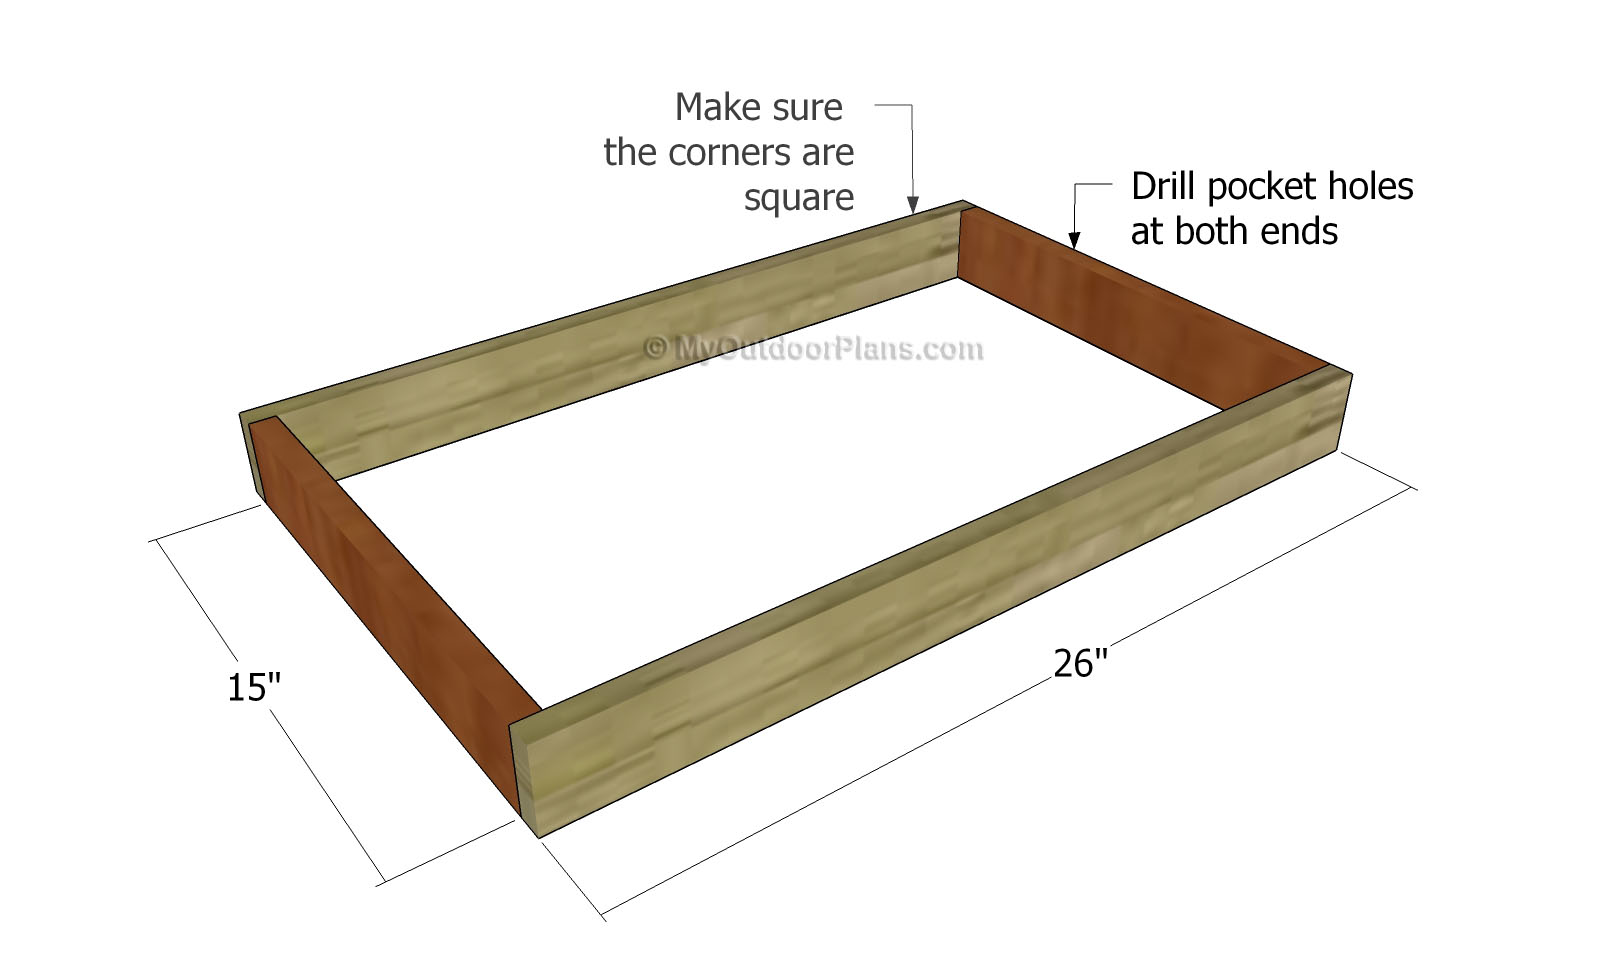 Lap Desk Plans | Free Outdoor Plans - DIY Shed, Wooden Playhouse, Bbq ...